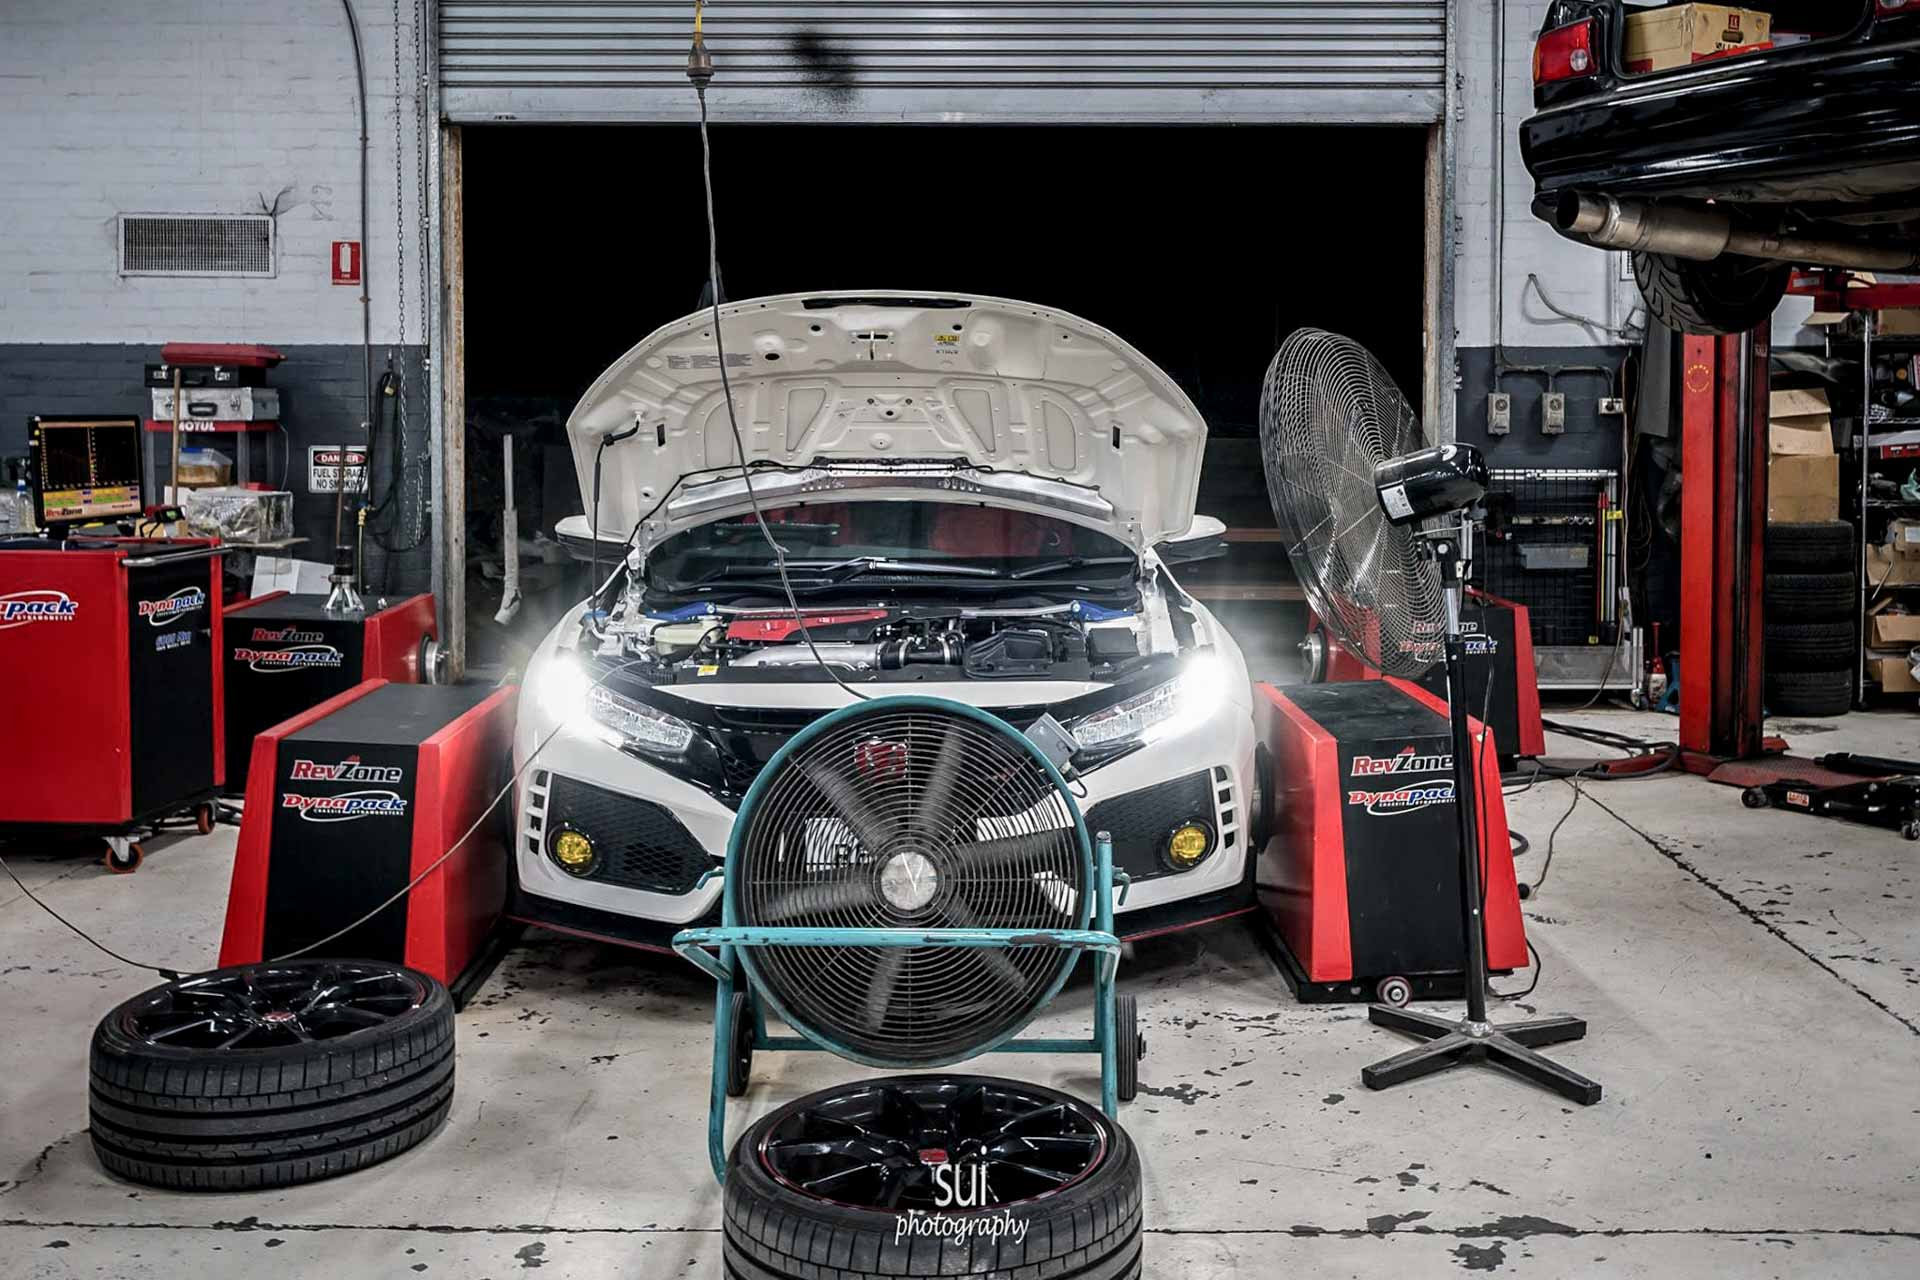 FK8 Civic TYPE R Stage 1 Tune 1 FK8 Civic TYPE R Stage 1 Tune Hondata is the proven world leader in tuning Honda engines.